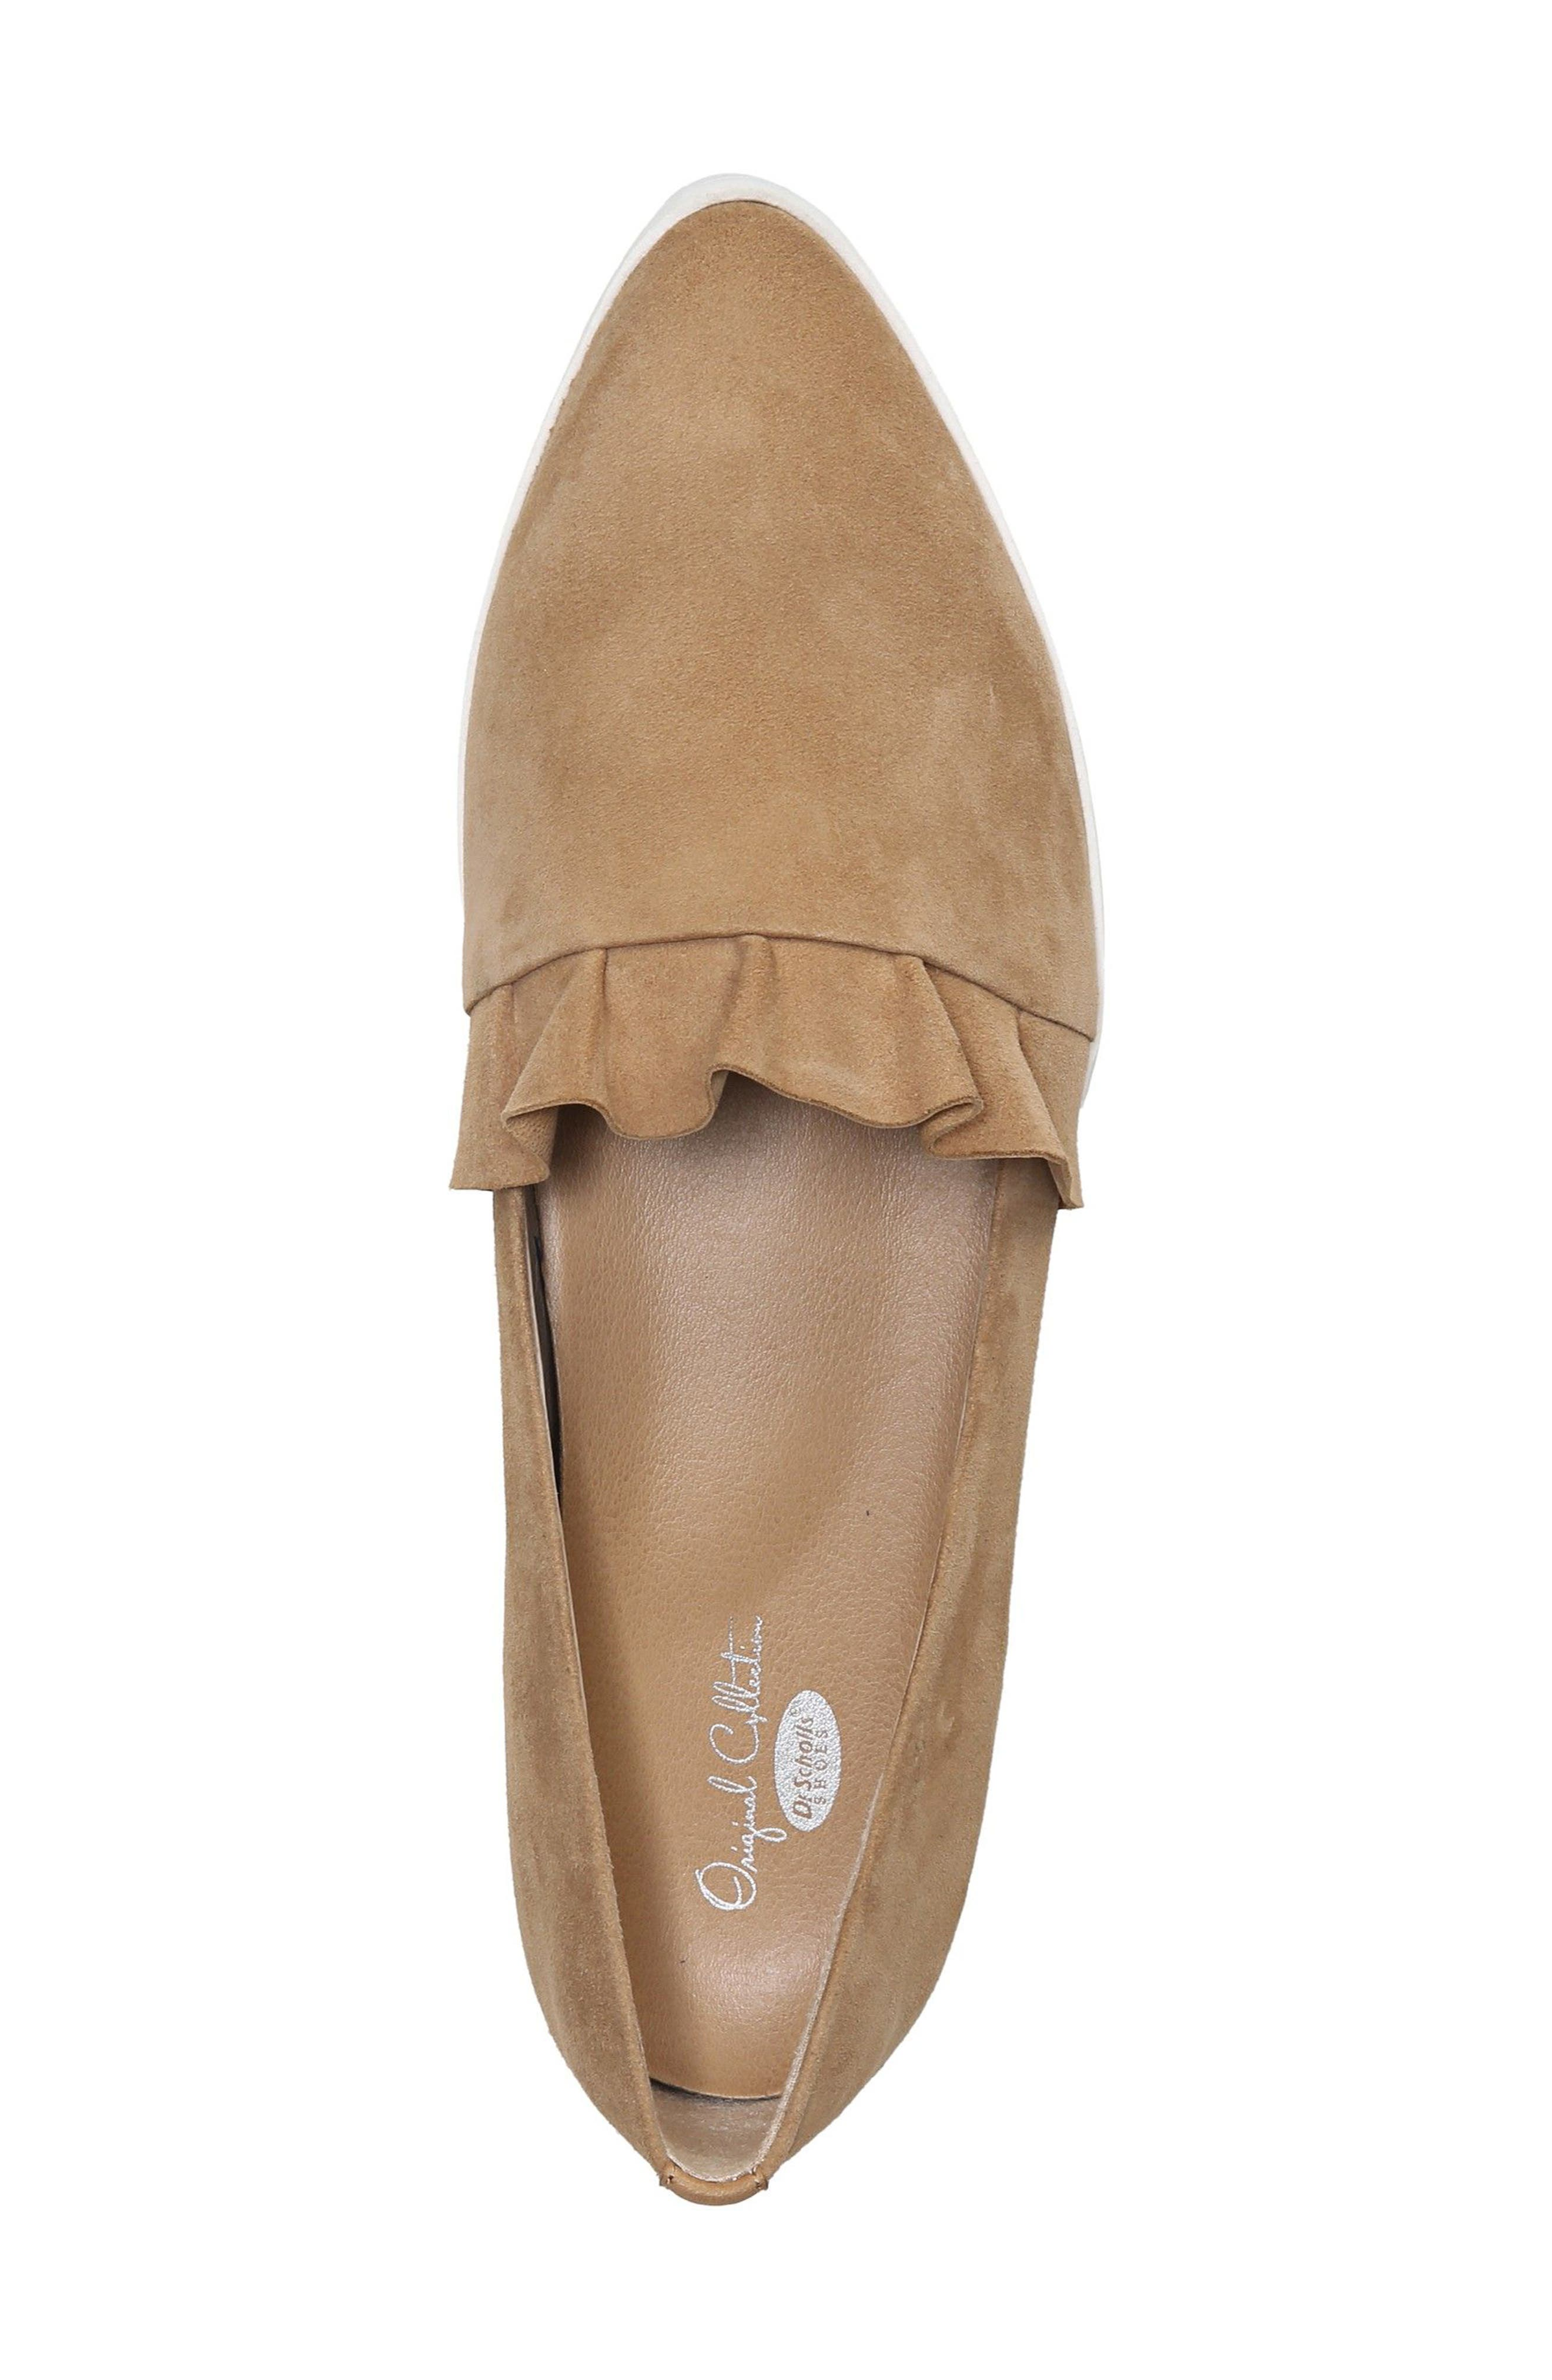 Vienna Slip-On Sneaker,                             Alternate thumbnail 5, color,                             Nude Suede